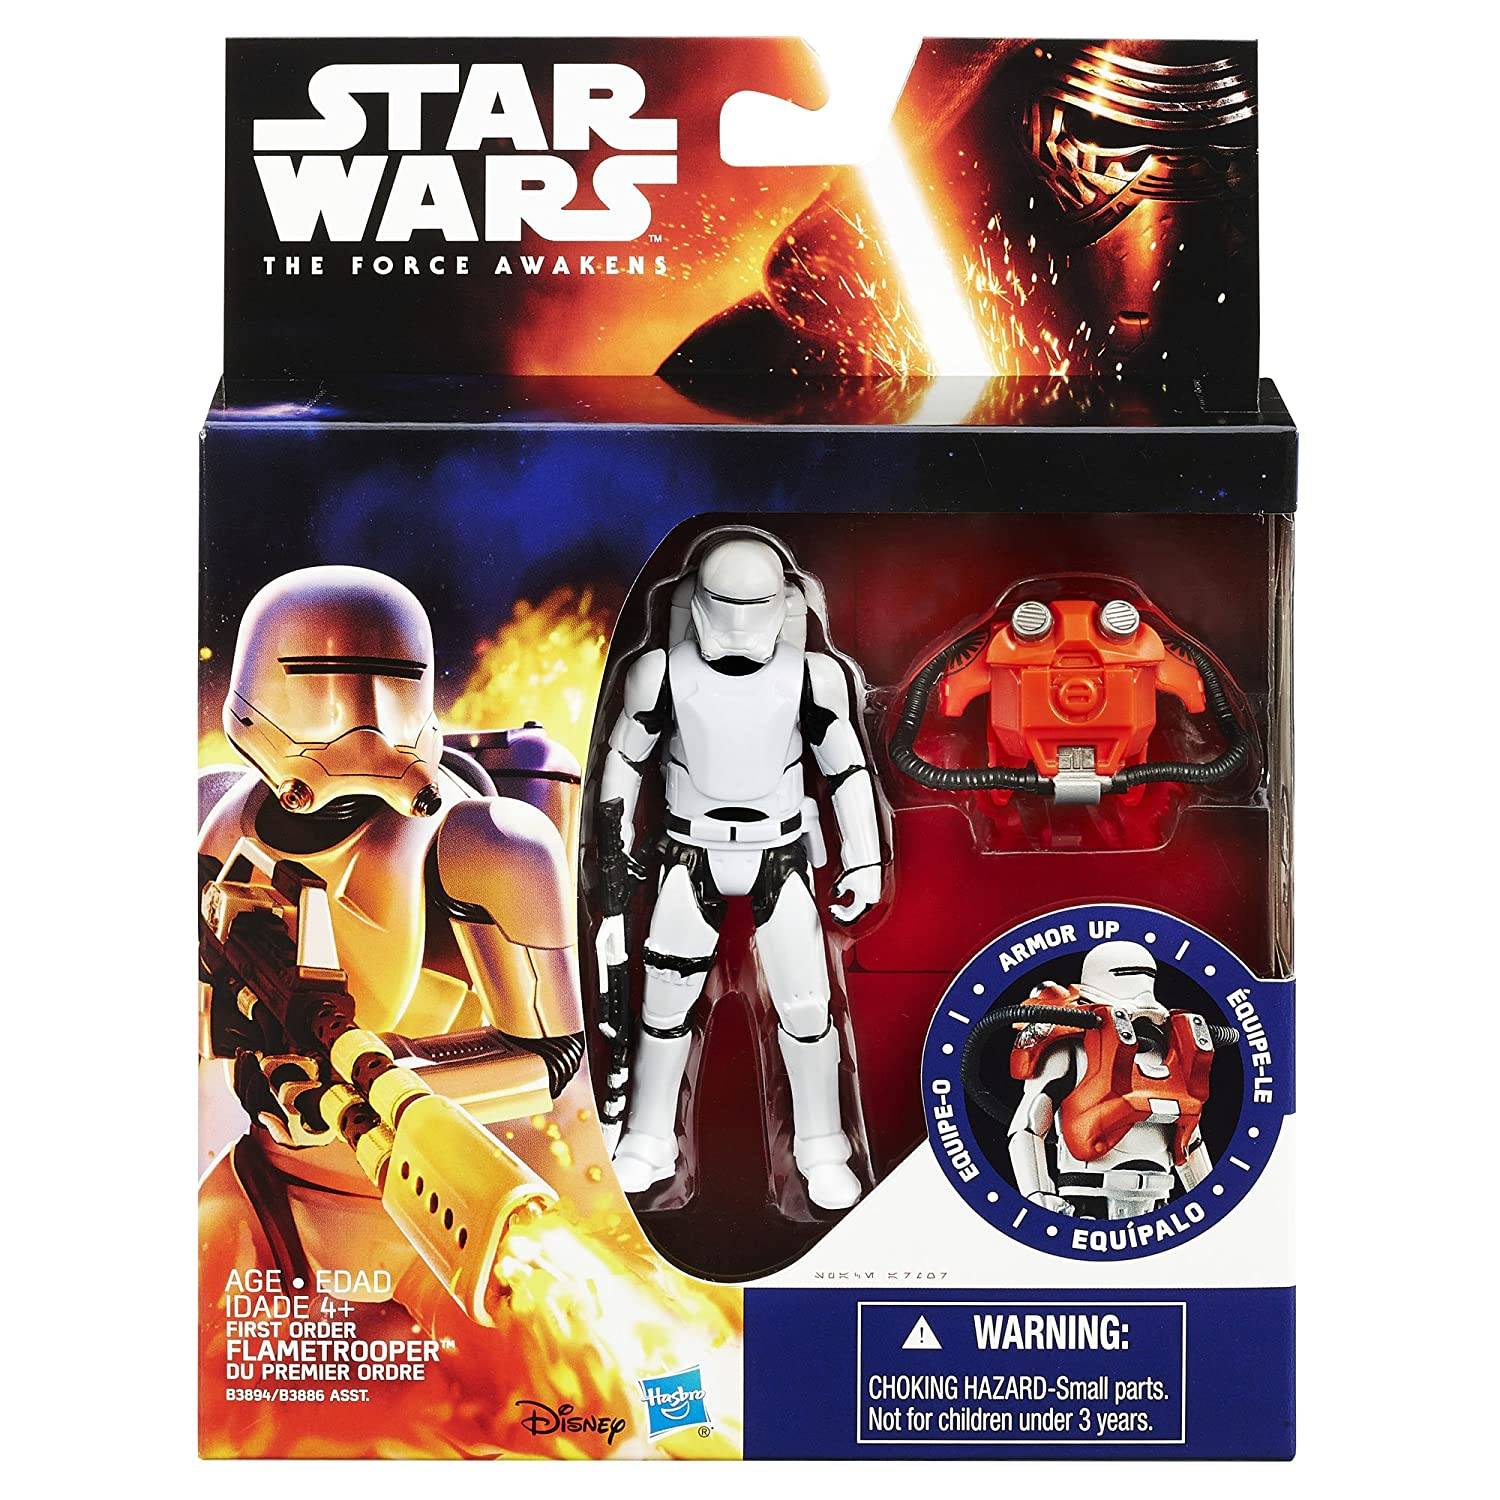 Star Wars The Force Awakens 3.75-Figure Space Mission Armor First Order Flametrooper Hasbro B3894AS0